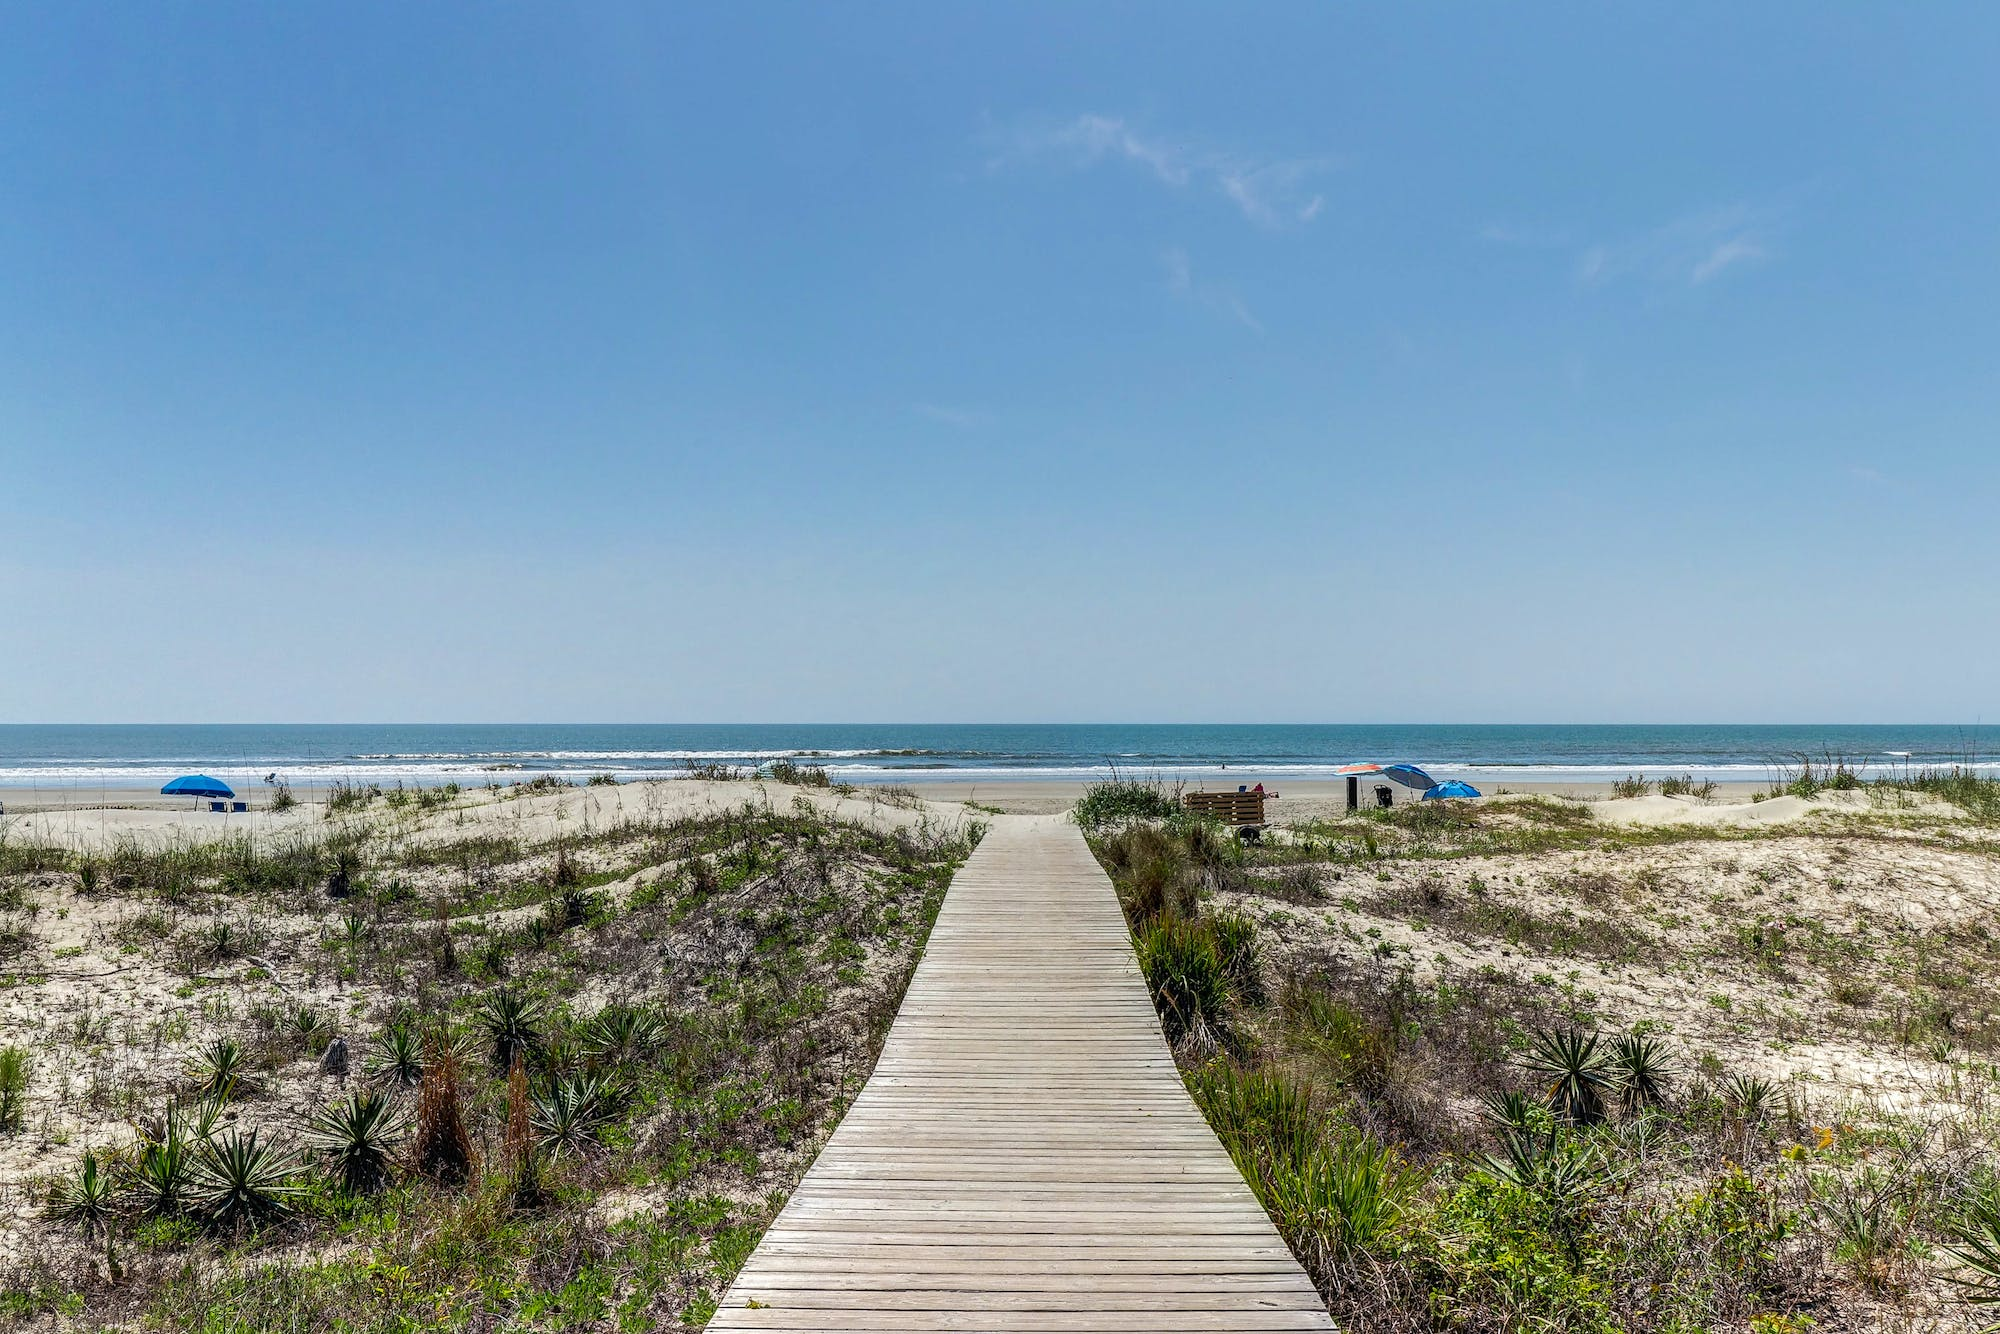 Boardwalk leading to the beach in Kiawah Island, South Carolina